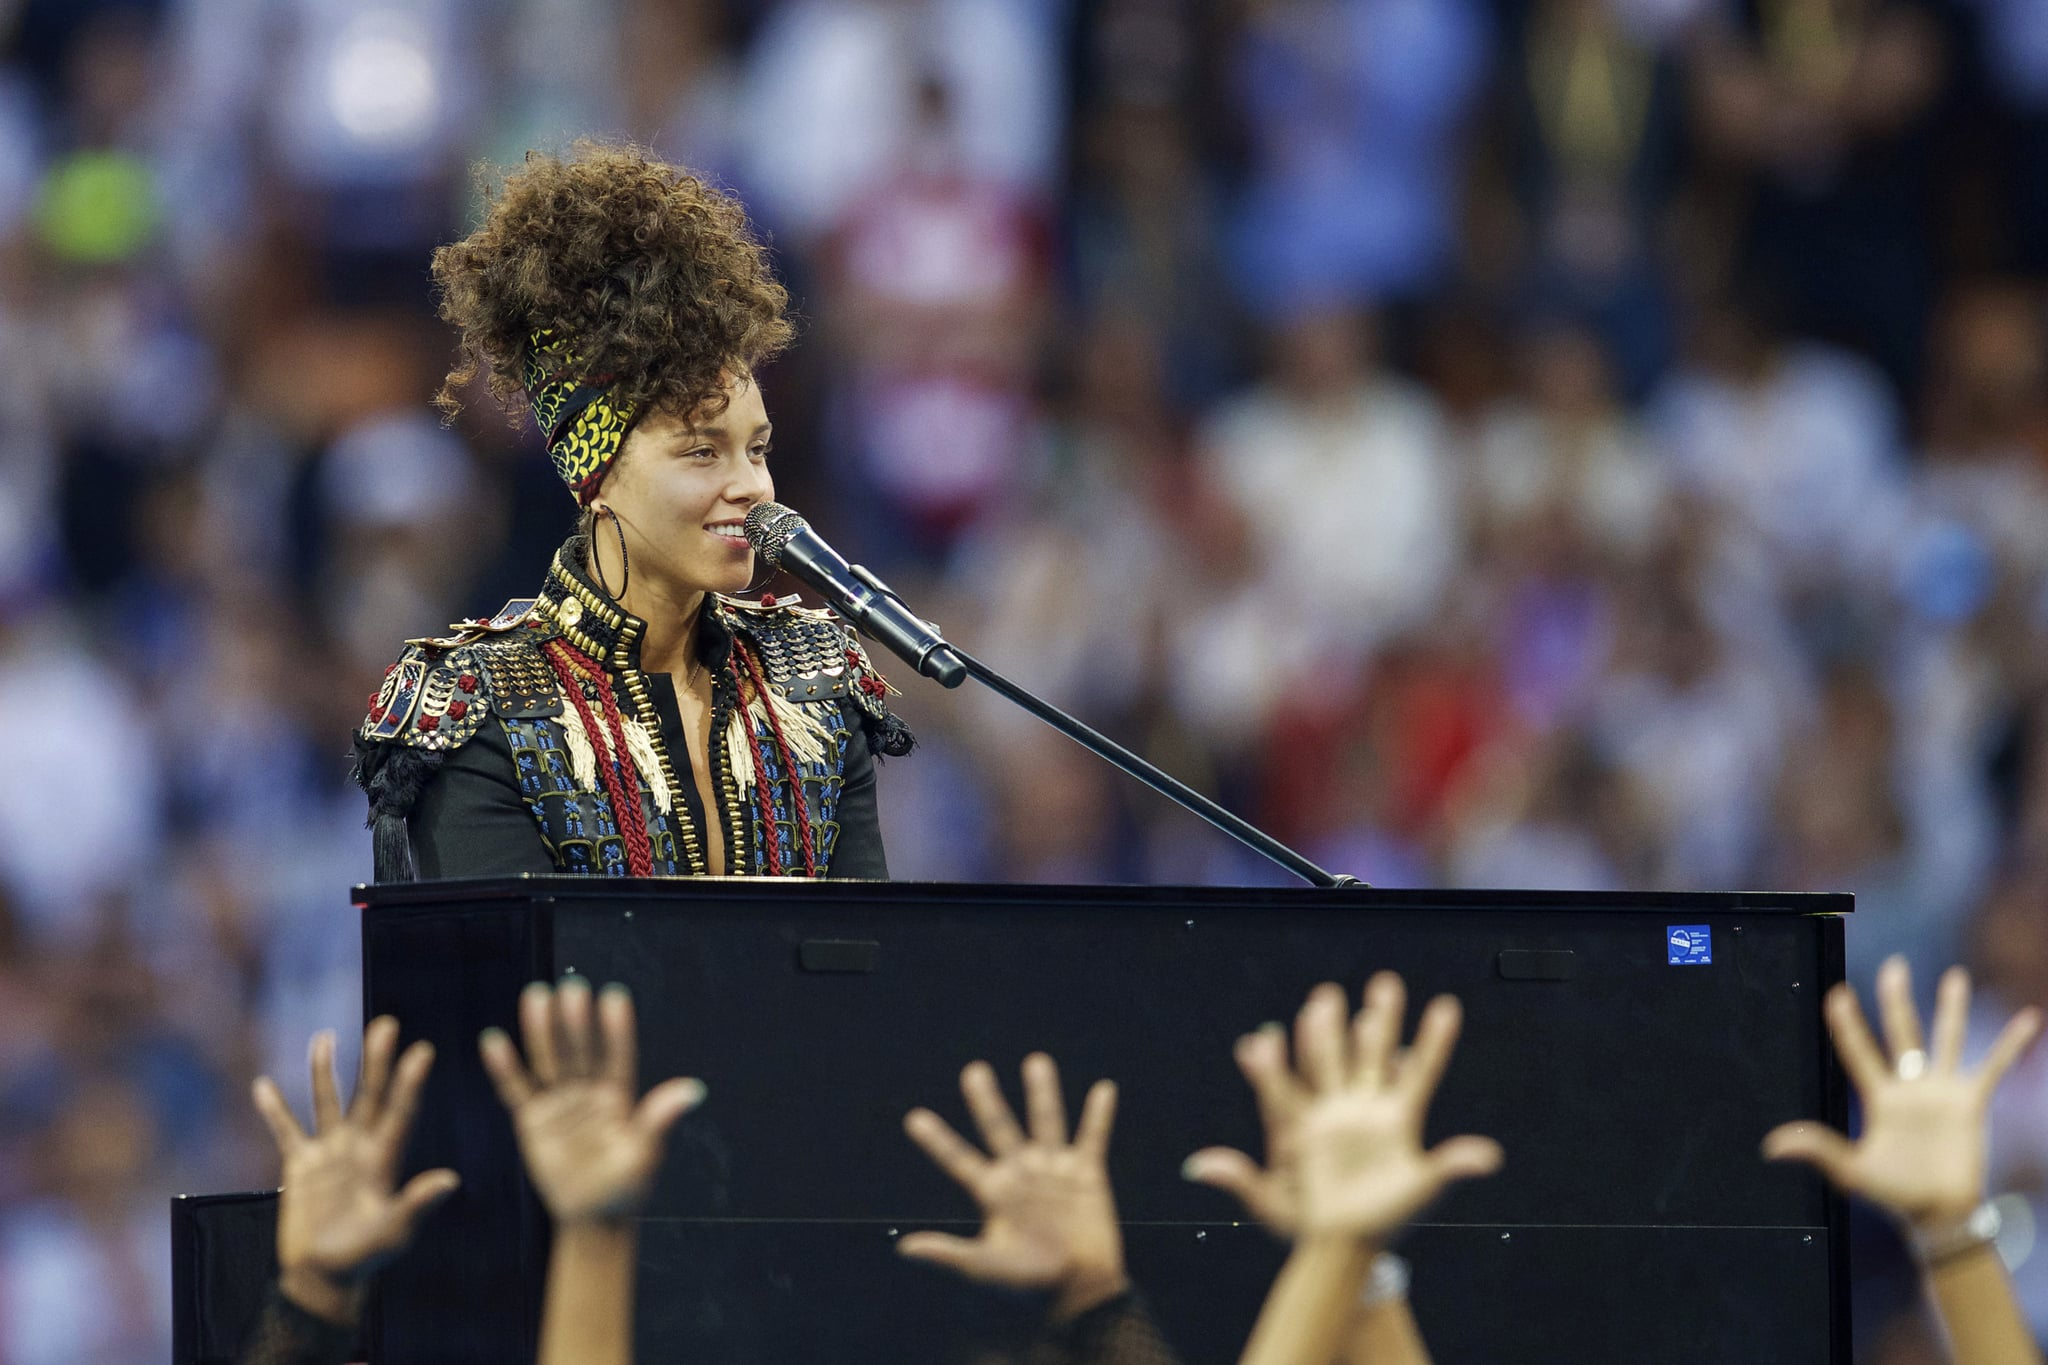 artist Alicia Keys performsshow before Champions League final during the UEFA Champions League final match between Real Madrid and Atletico Madrid on May 28, 2016 at the Giuseppe Meazza San Siro stadium in Milan, Italy.(Photo by VI Images via Getty Images)